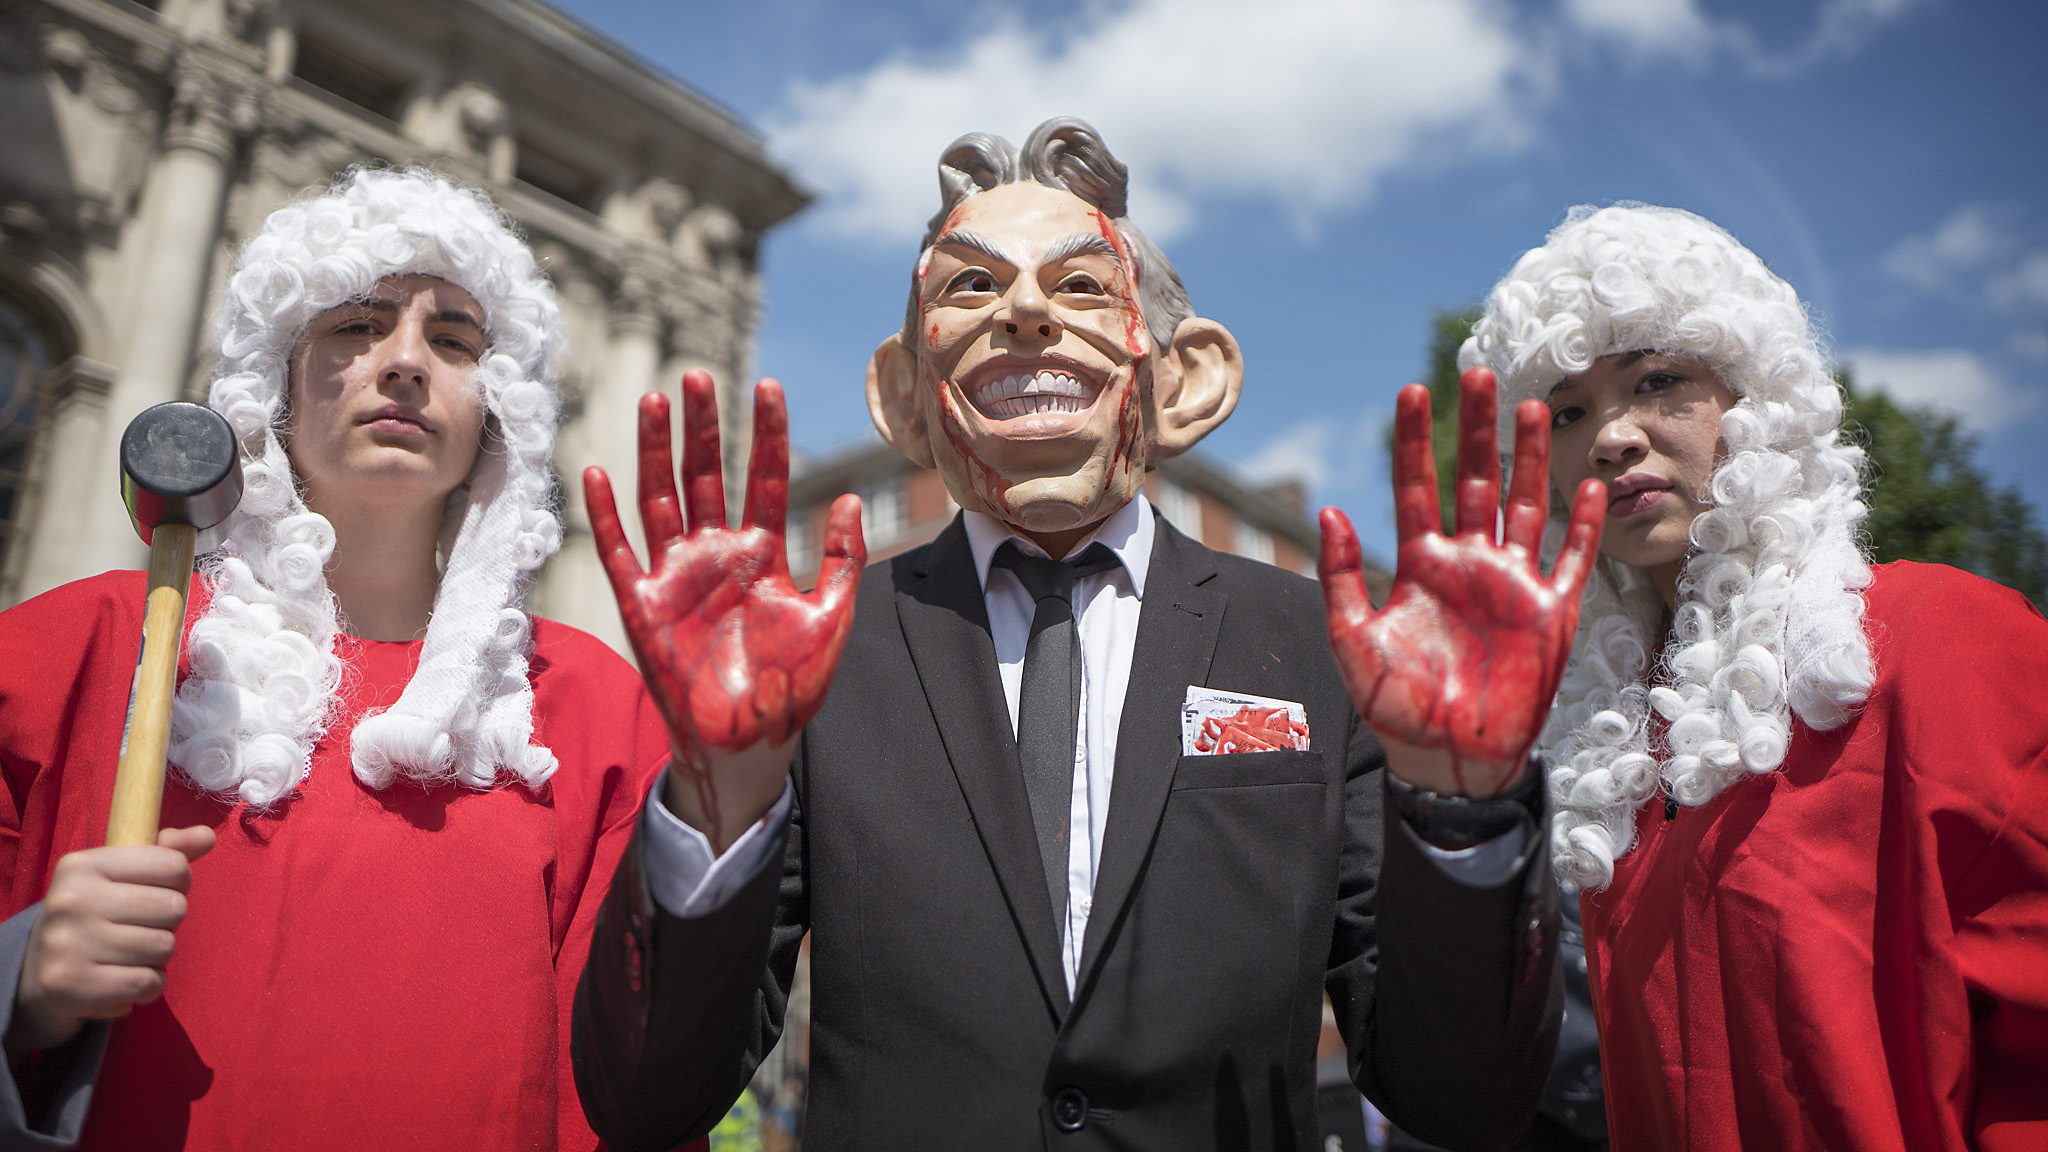 The Chilcot inquiry into Iraq reports.... A member of the stop the war coalition, dressed as Tony Blair, protest outside the Chilcot inquiry at the QE2 centre, central London.